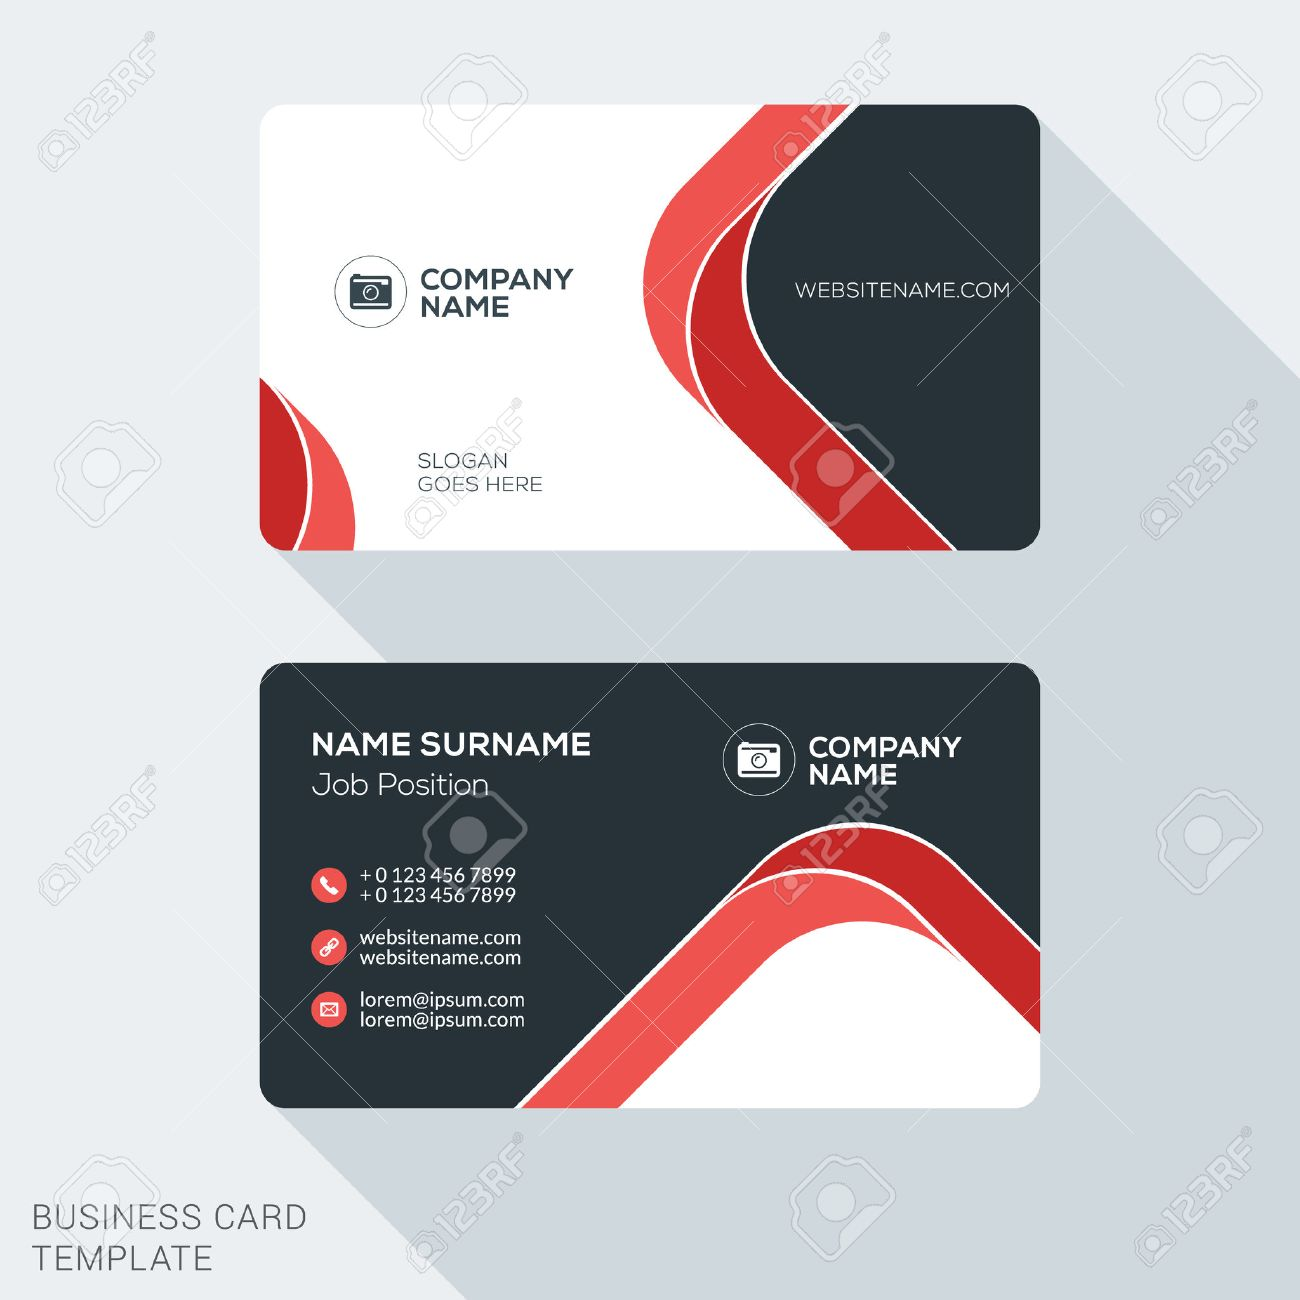 Creative and Clean Business Card Template. Flat Design Vector Illustration. Stationery Design - 52453922